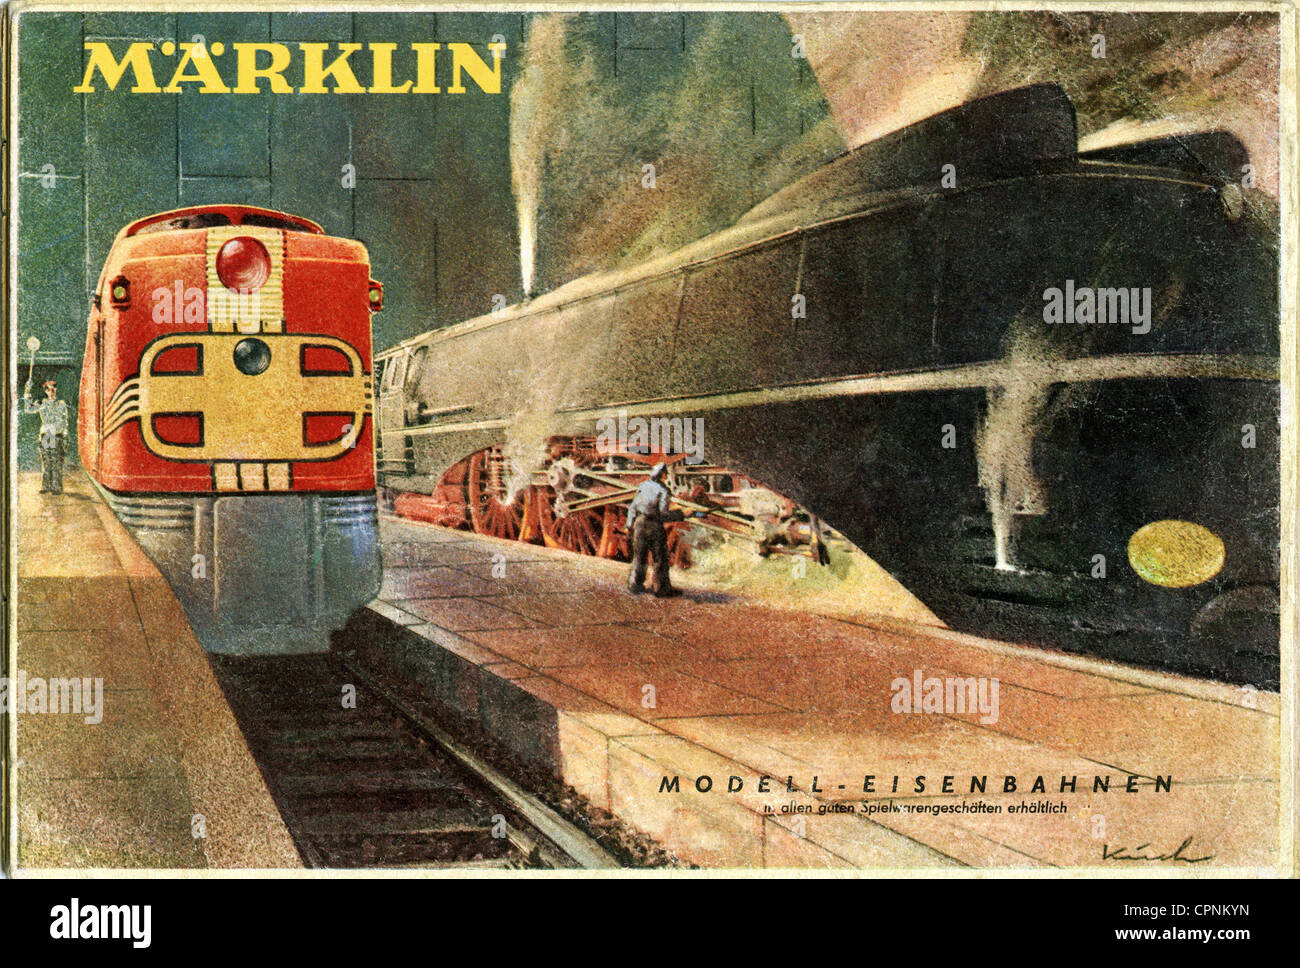 toys, model railway, Maerklin Catalogue, left: version DL800, DL means twin locomotive, right: the famous express - Stock Image